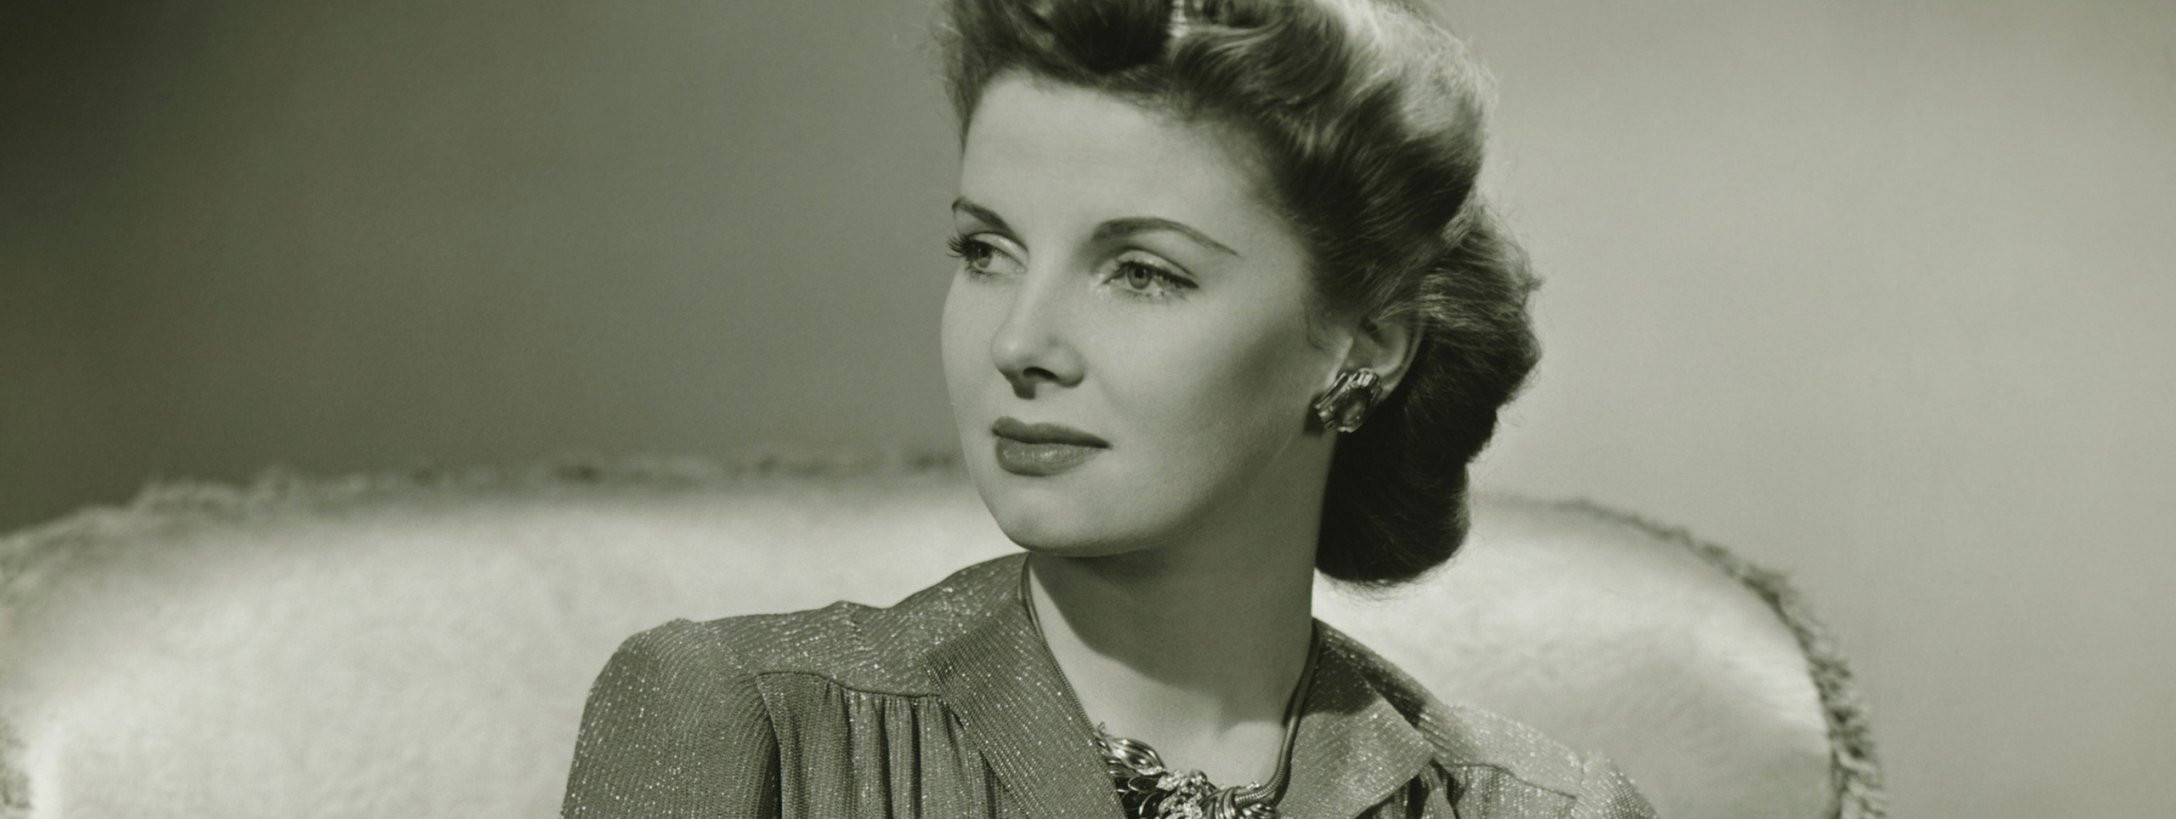 Best ideas about 40'S Hairstyles . Save or Pin 40S Hairstyles Long Hair Now.